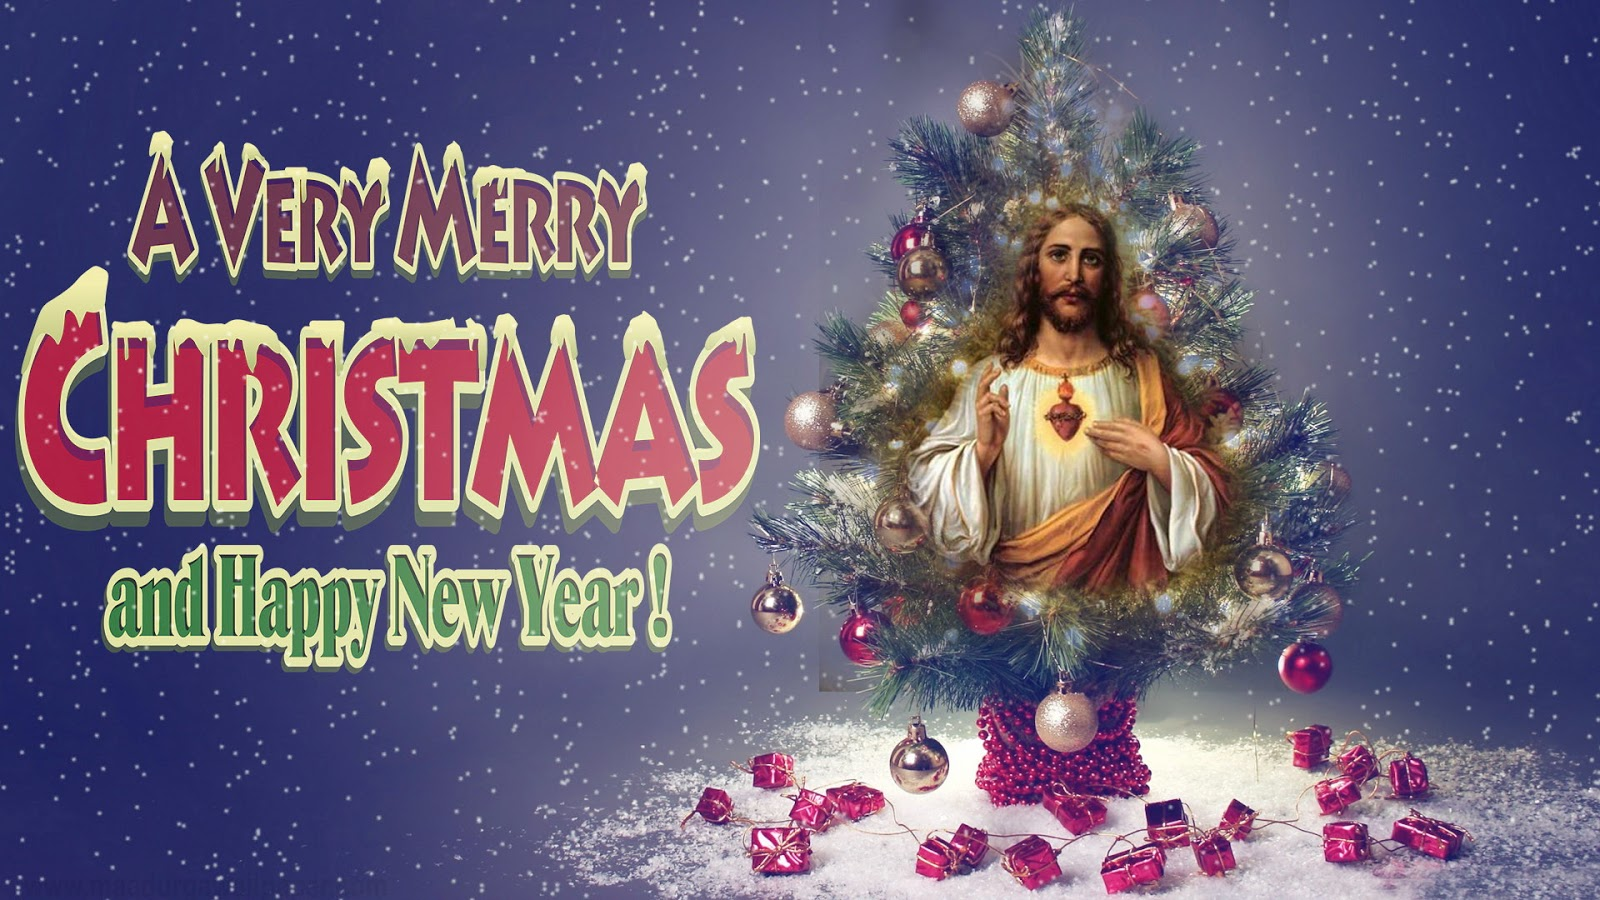 Christmas Images With Jesus - FREE Download